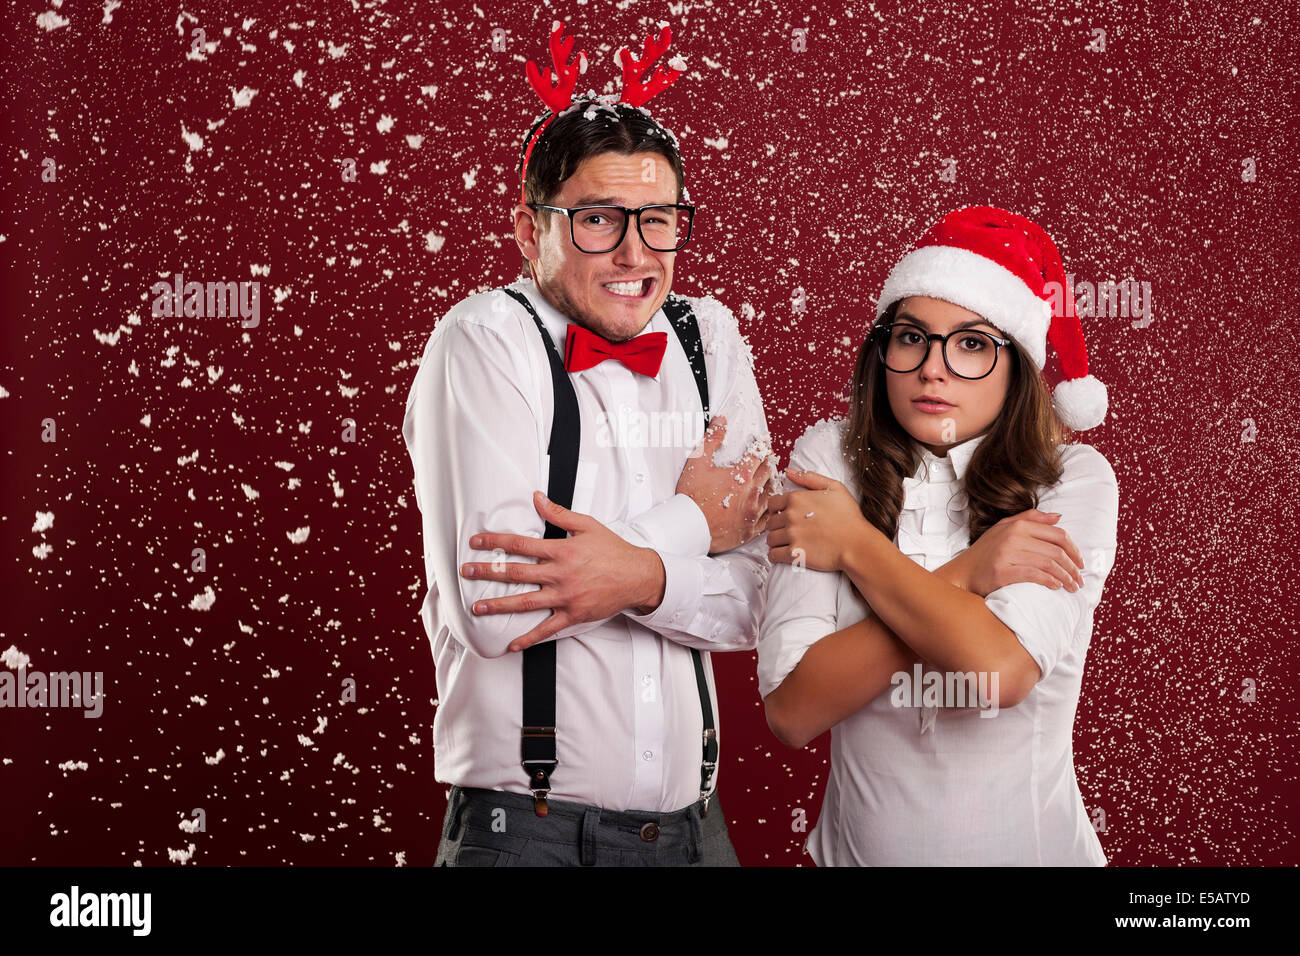 Funny couple shaking from cold weather in Christmas time  Debica, Poland - Stock Image